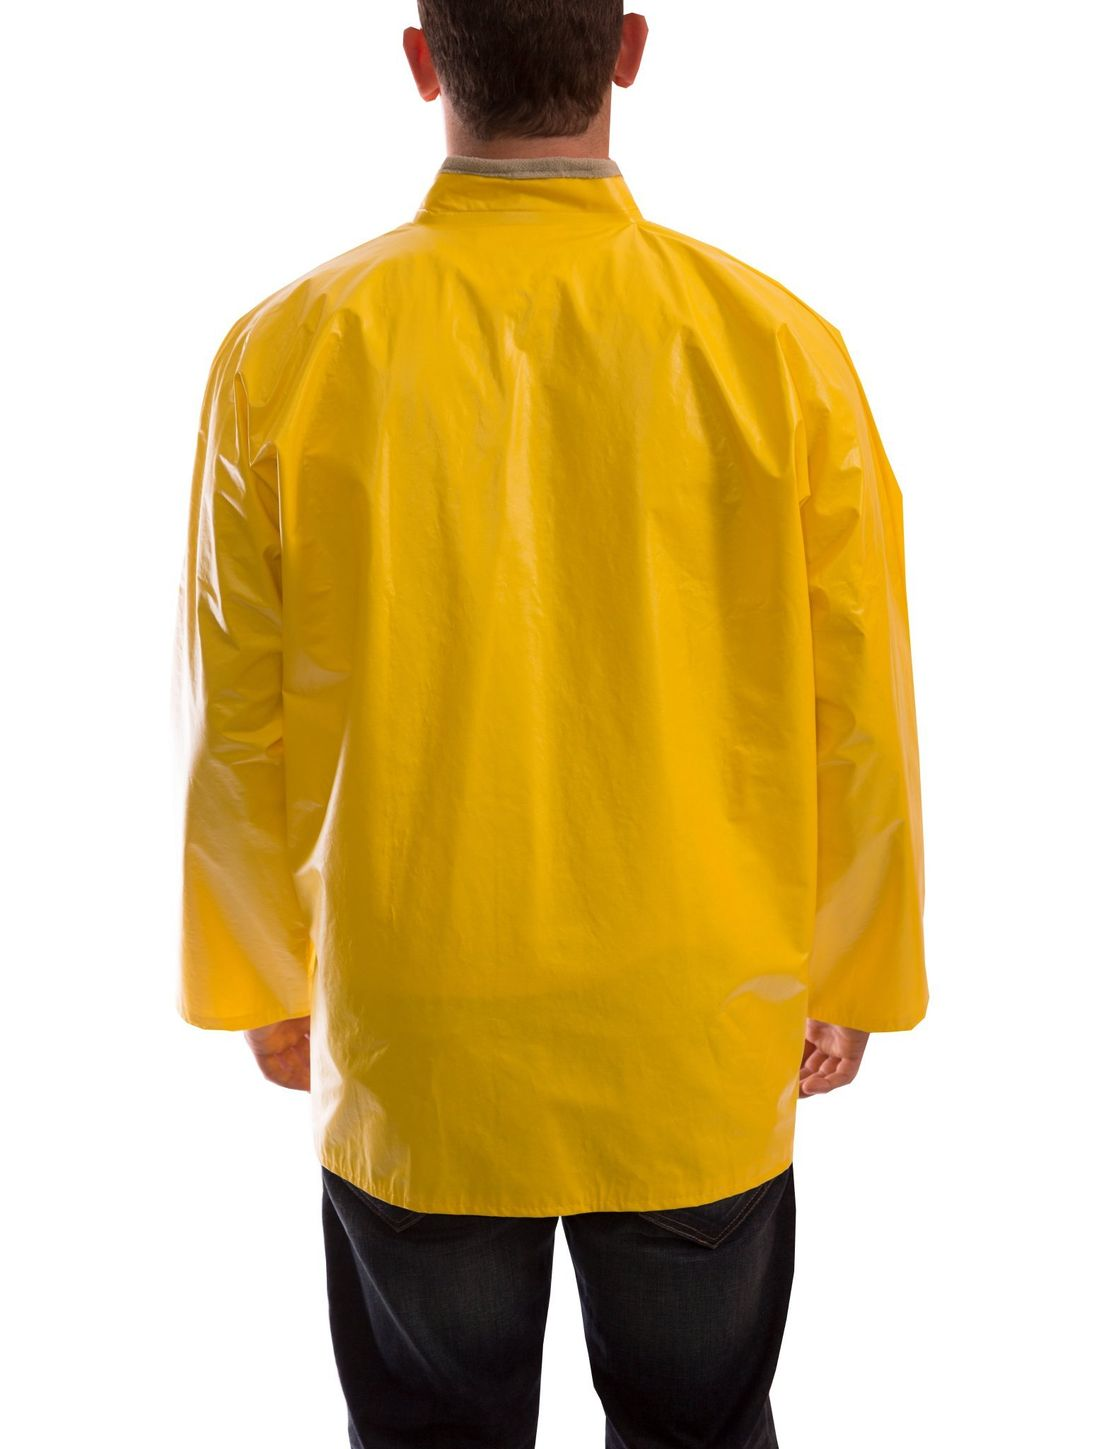 tingley-j32007-pvc-coated-work-jacket-back.jpg